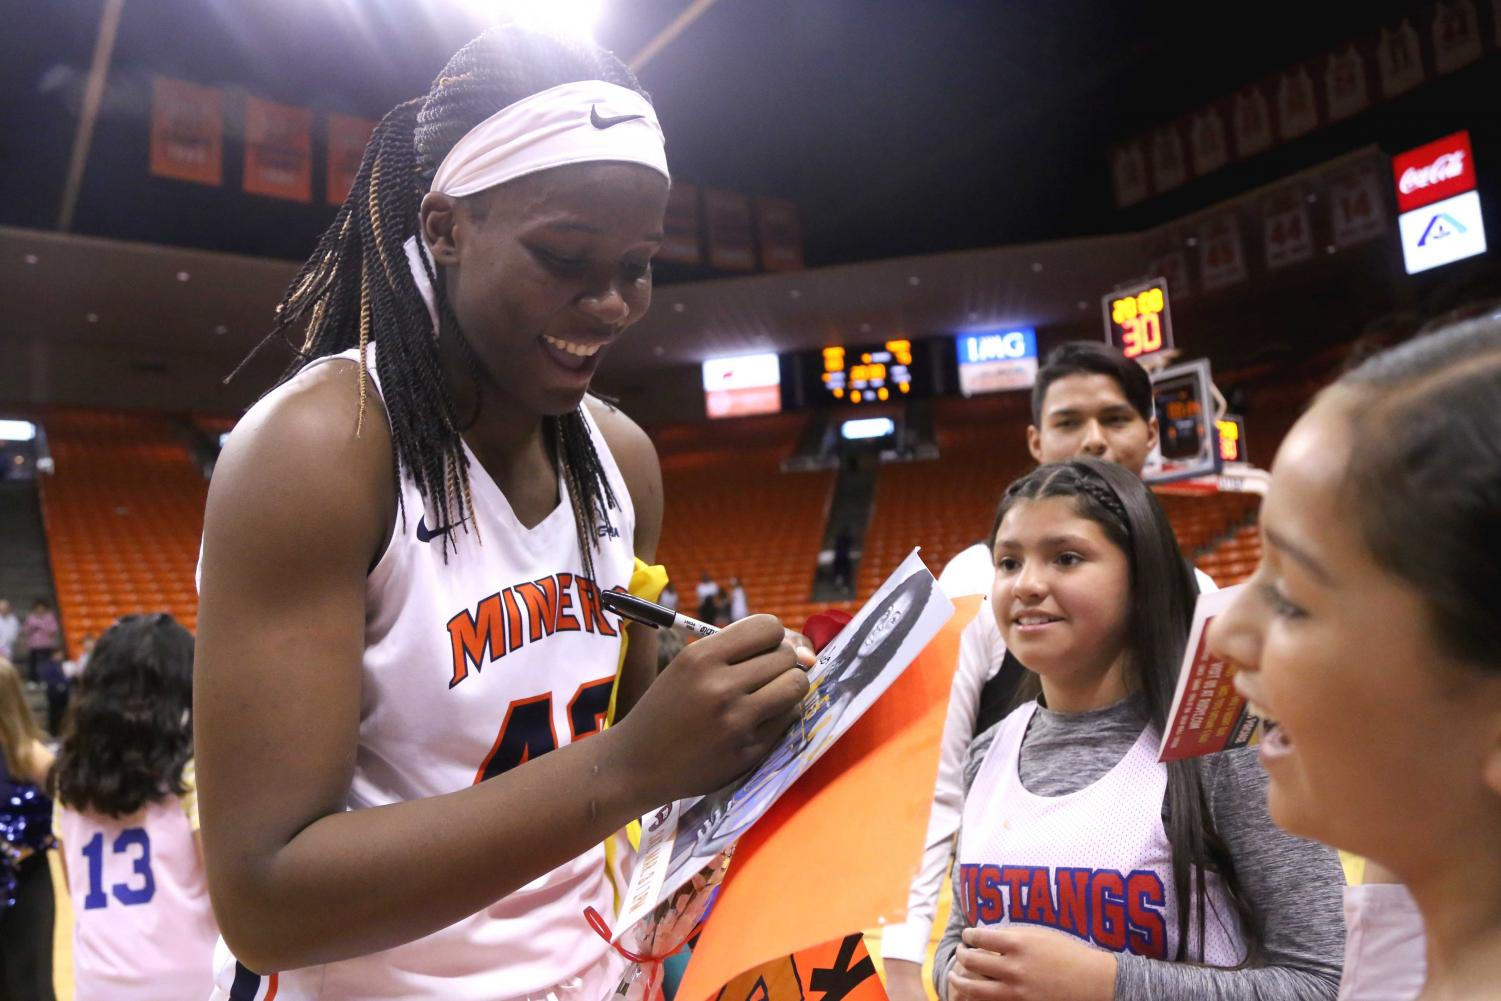 Senior+forward+Tamara+Seda+signs+a+photo+of+herself+for+her+young+fans+at+her+senior+game+on+Saturday%2C+March+3+at+the+Don+Haskins+Center.